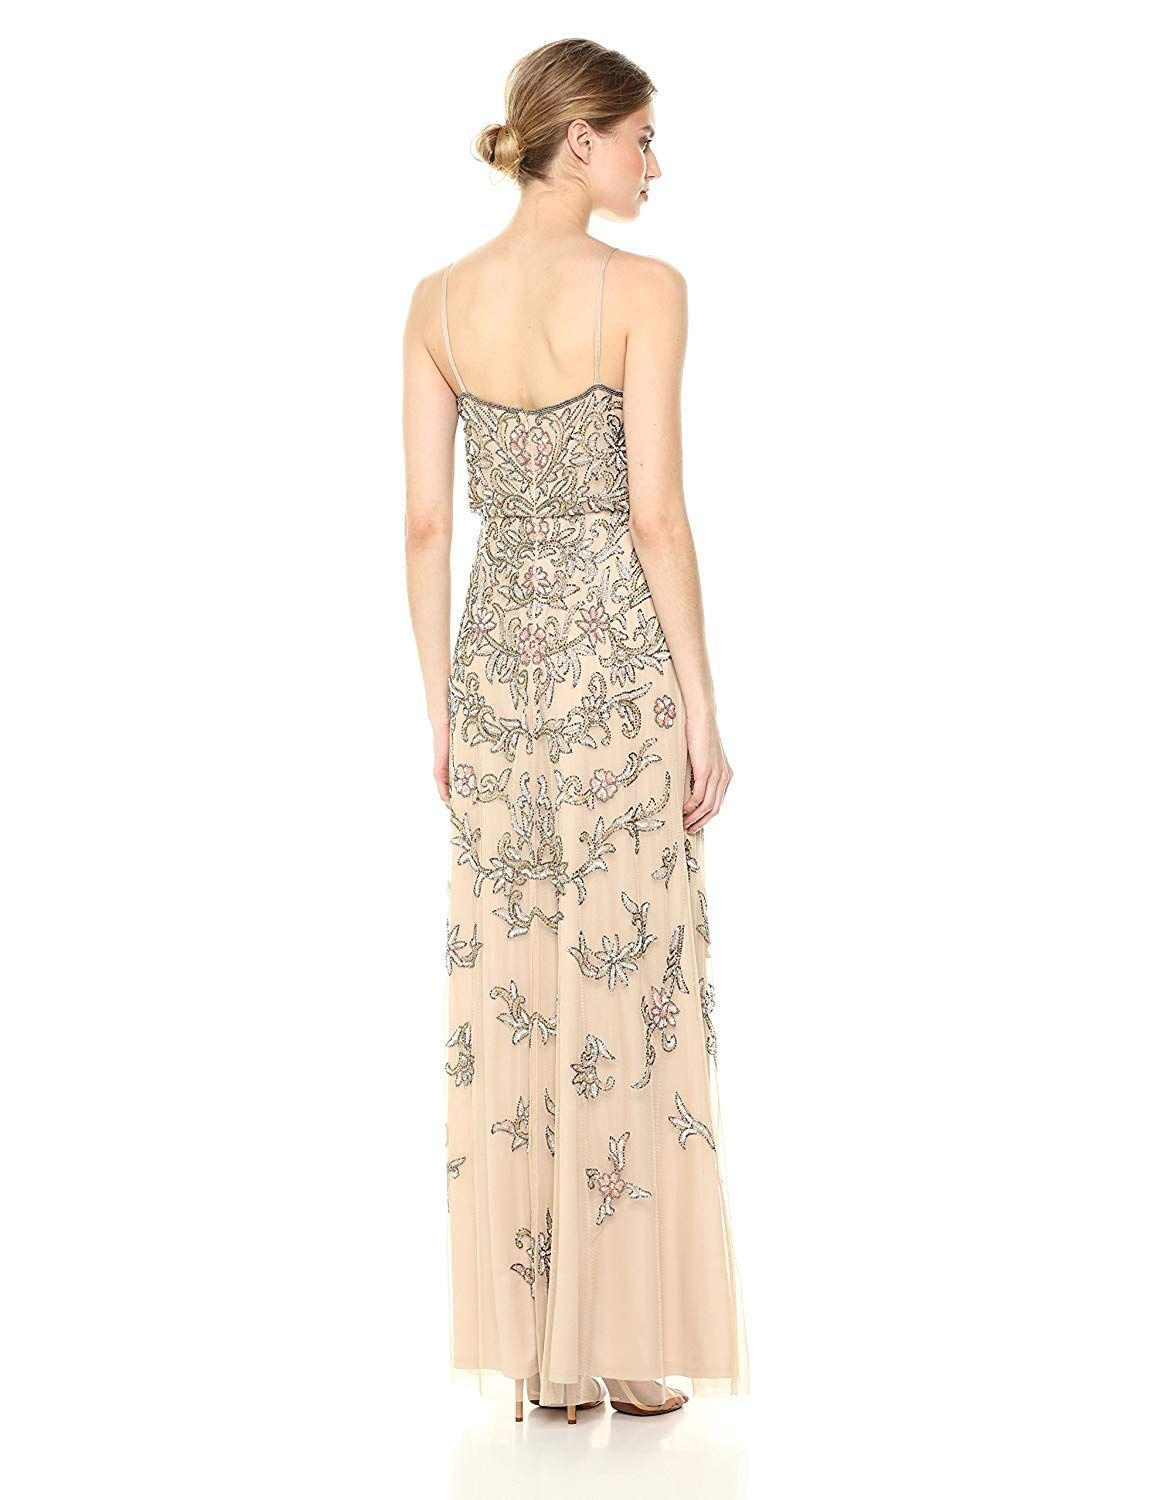 Adrianna Papell Womens Multi Colored Floral Beaded Blouson Gown